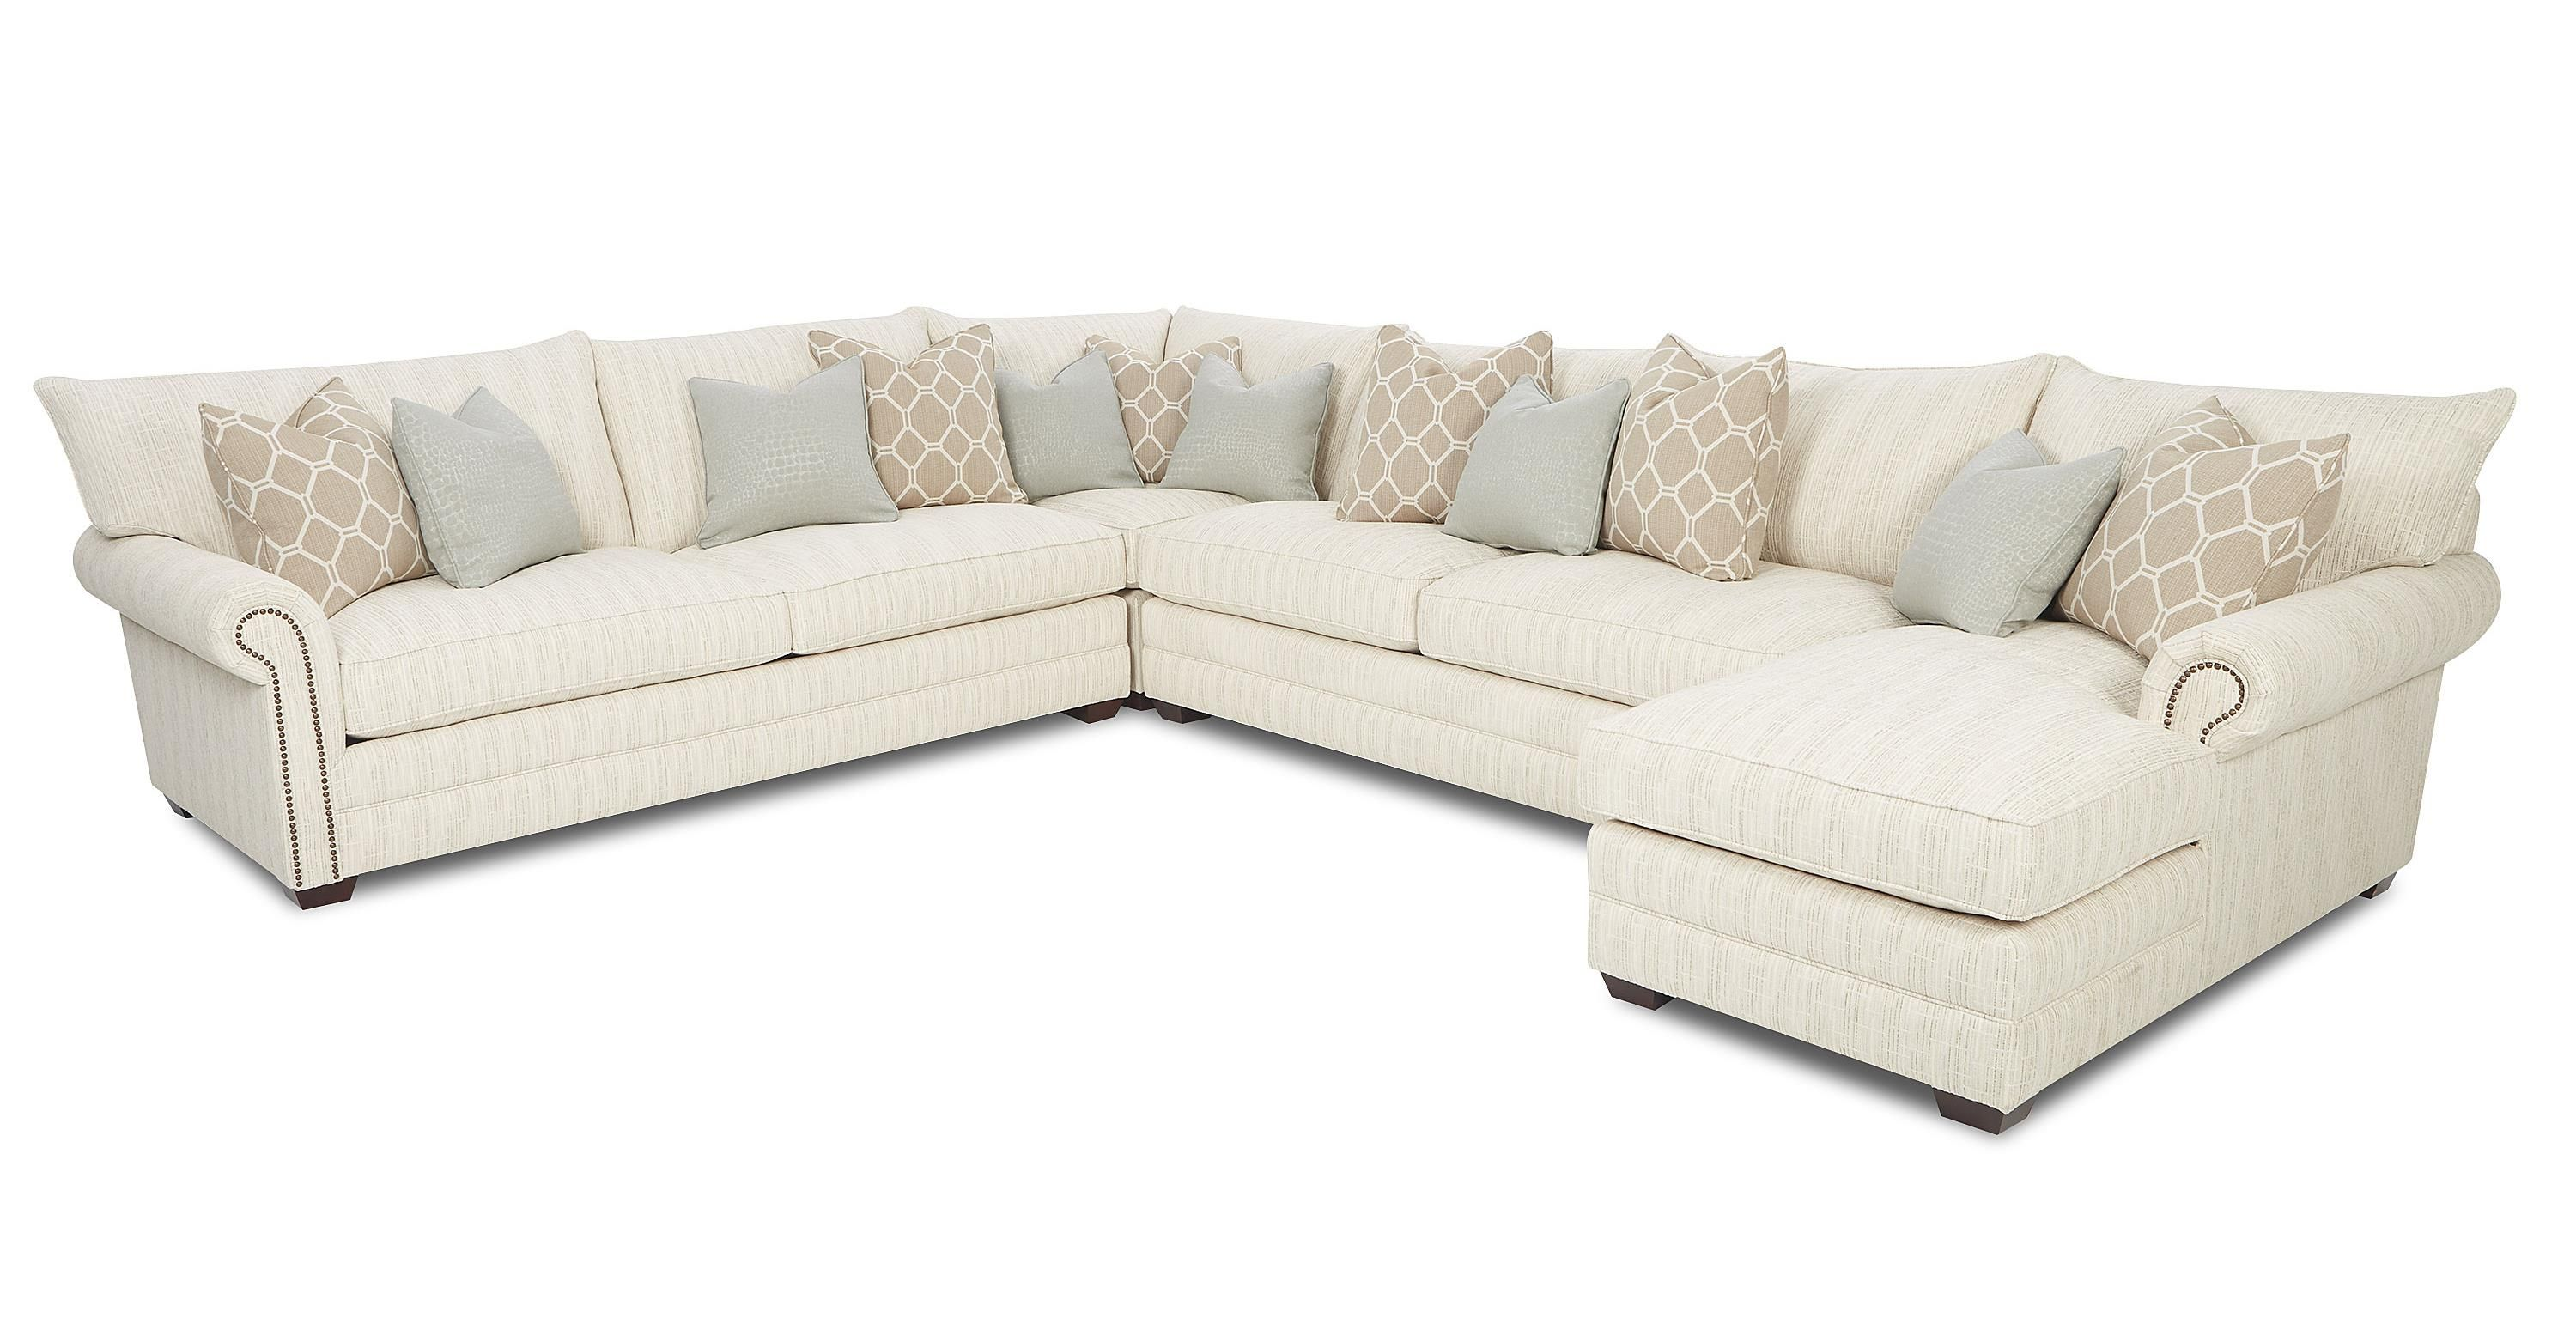 Huntley Traditional Sectional Sofa By Klaussner Leather Couch